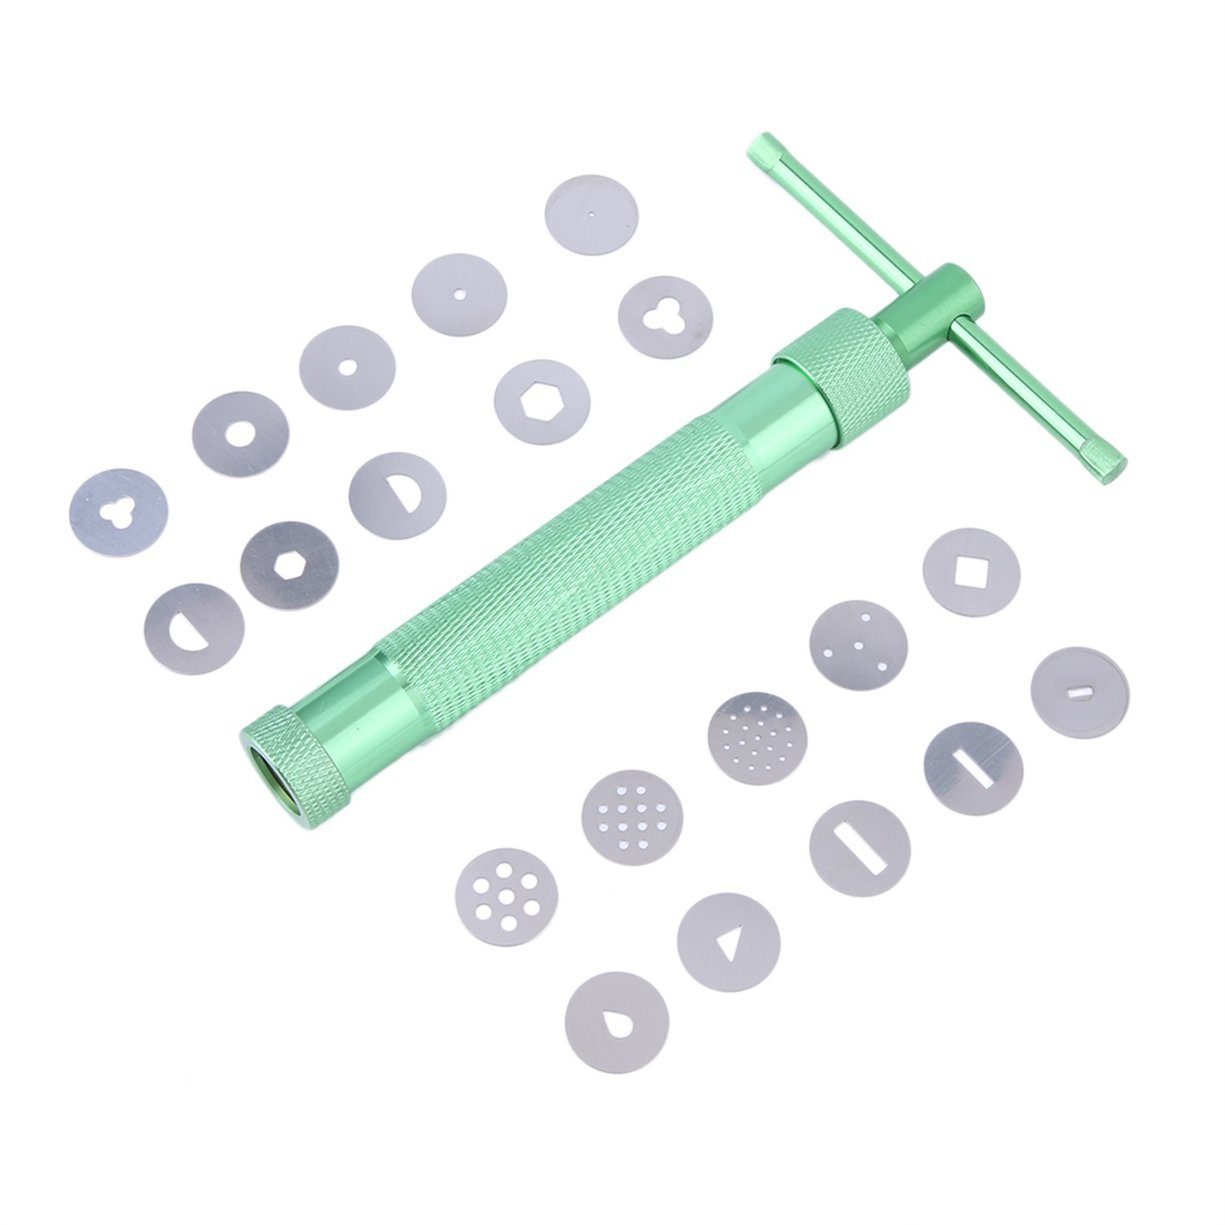 Detectoy Green Stainless Steel Clay Extruder Tool with 20 Tips Sugar Paste Extruder Cake Decor Tools 20 x Discs of Different Patterns